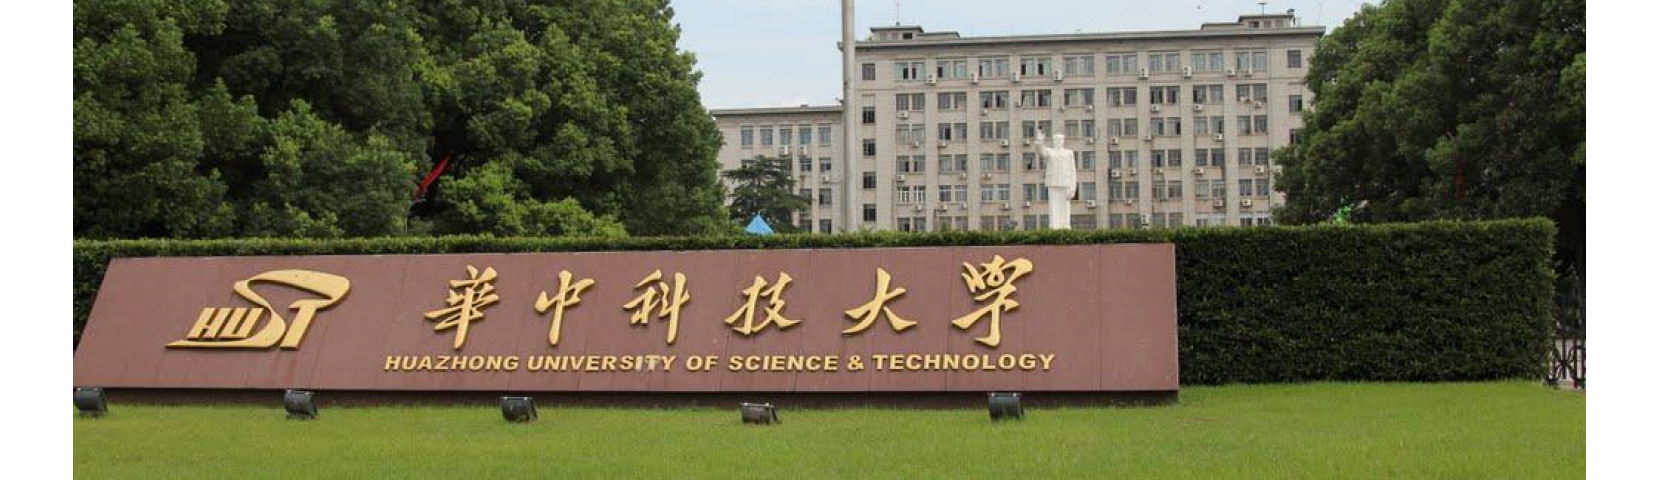 Huazhong Science and Technology University